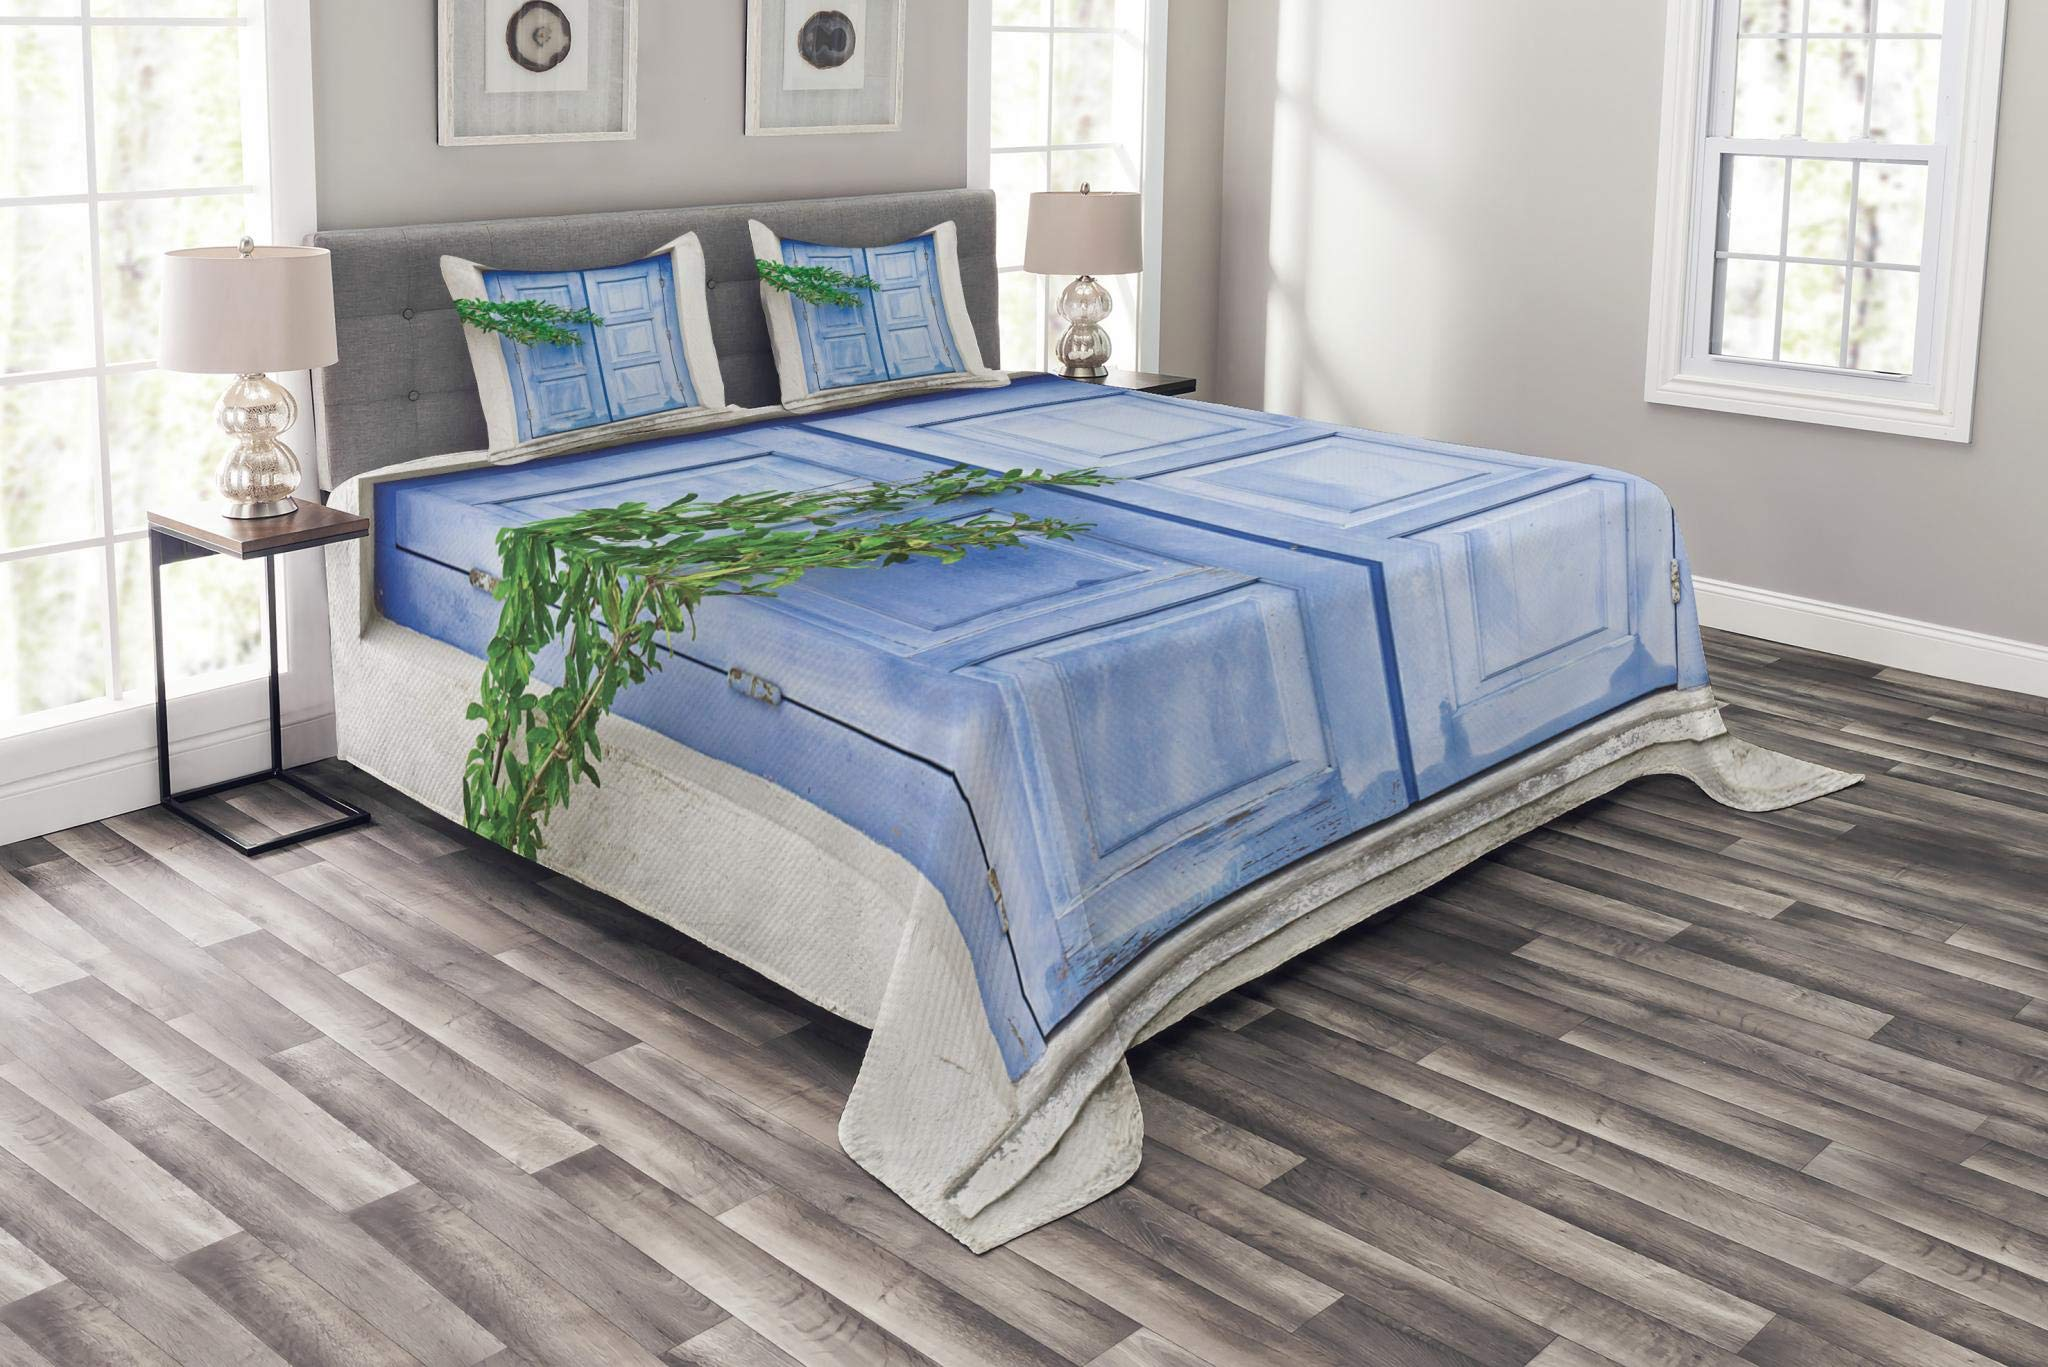 Lunarable Country Bedspread Set Queen Size, Mediterranean Window Shutters with Tree Print Heritage Greek Island Image, Decorative Quilted 3 Piece Coverlet Set with 2 Pillow Shams, Turquoise White